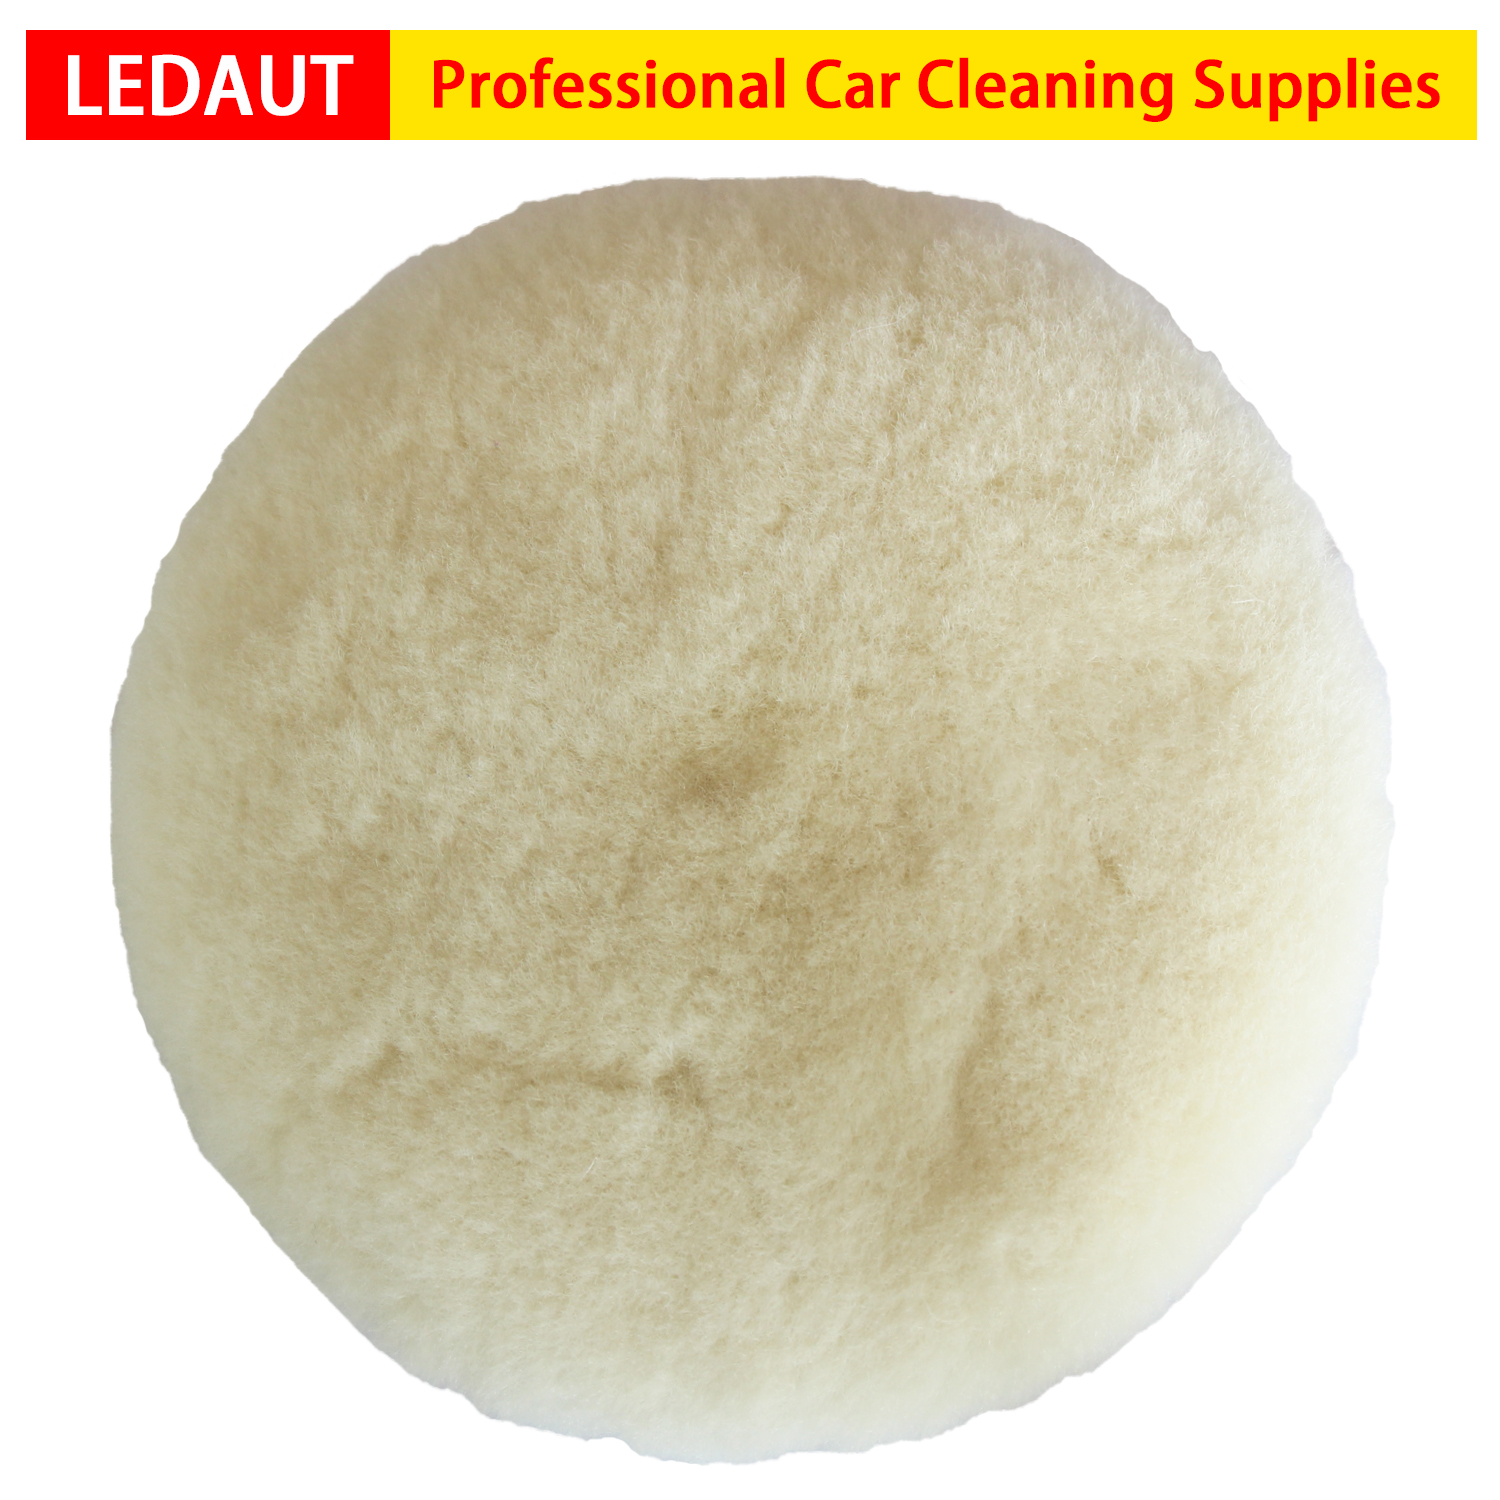 7 Inch Wool Buffing Pad Car Detailing Polishing Backing Buffer 1PC